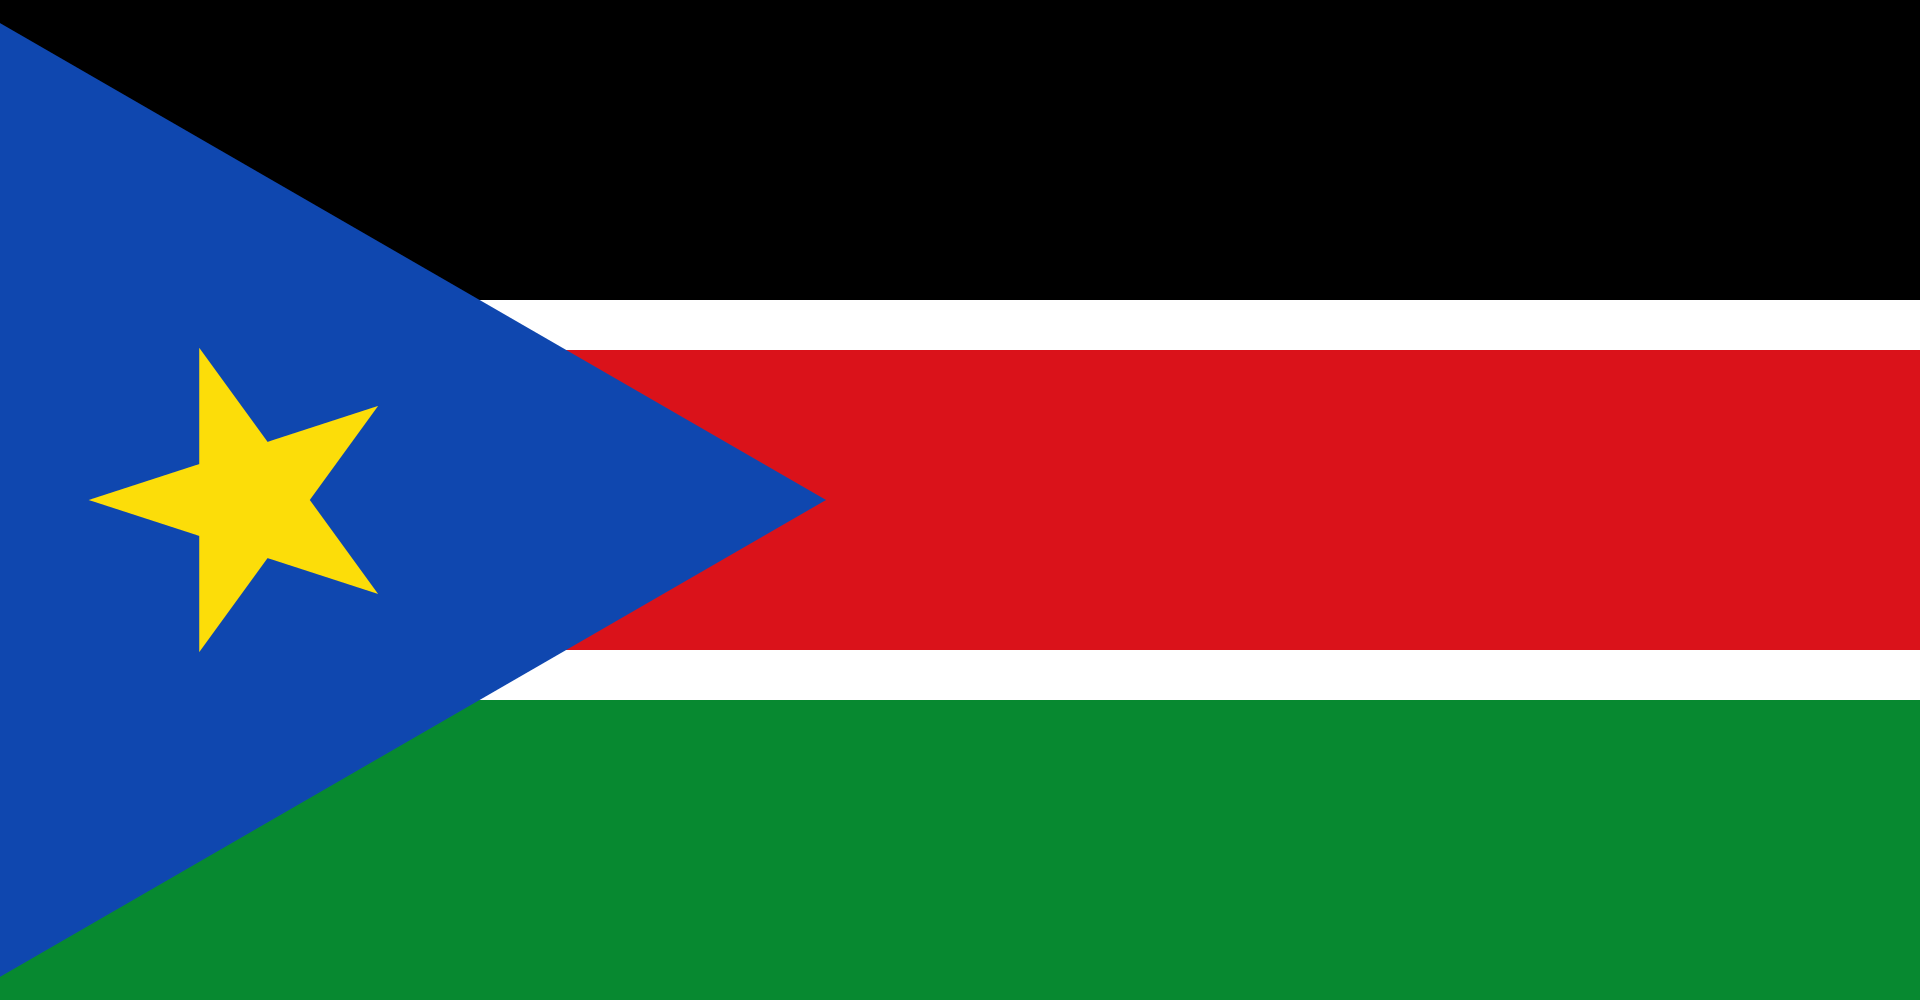 South Sudan Country Flag Wallpaper PaperPull 1920x1000